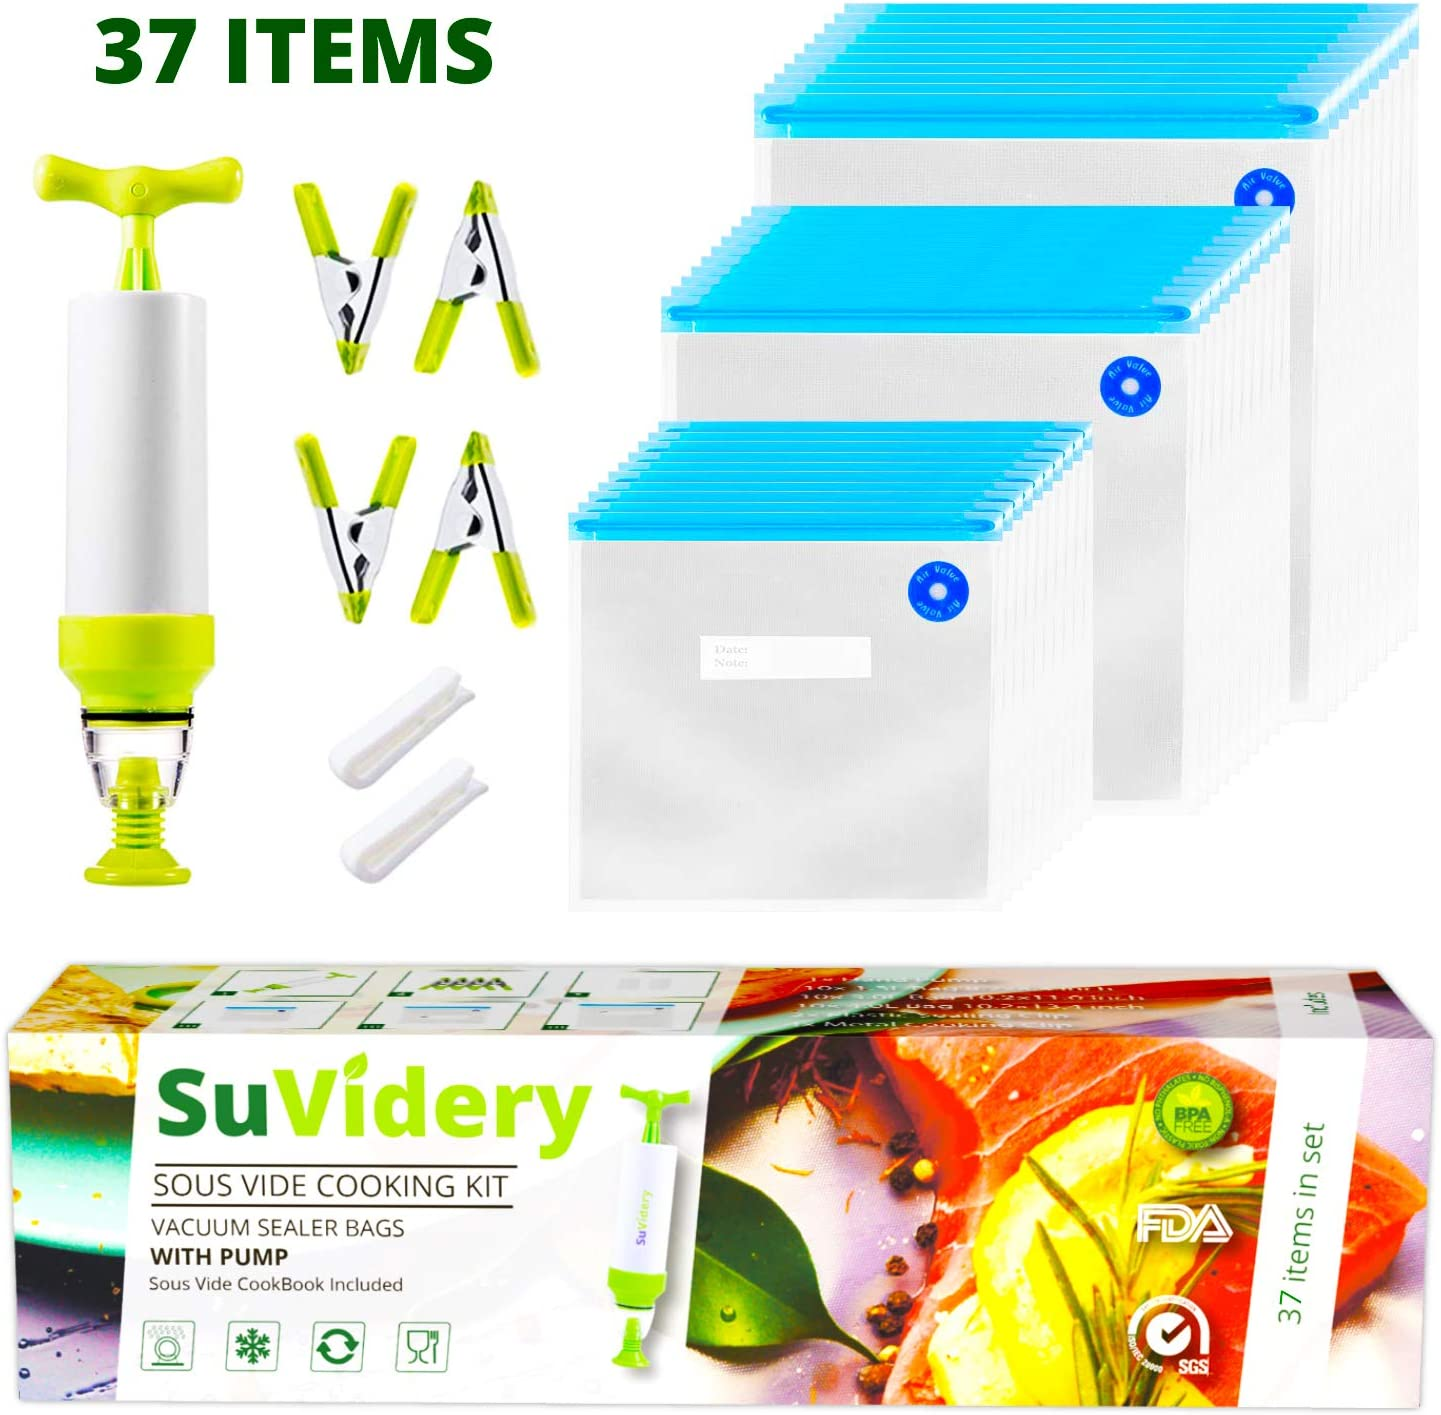 Sous Vide Bags By SuVidery - 30 Reusable Multi Size Vacuum Sealer Bags Kit With Hand Pump - Easy To Use For Any Sous Vide Cookers, Freeze Or Store Food